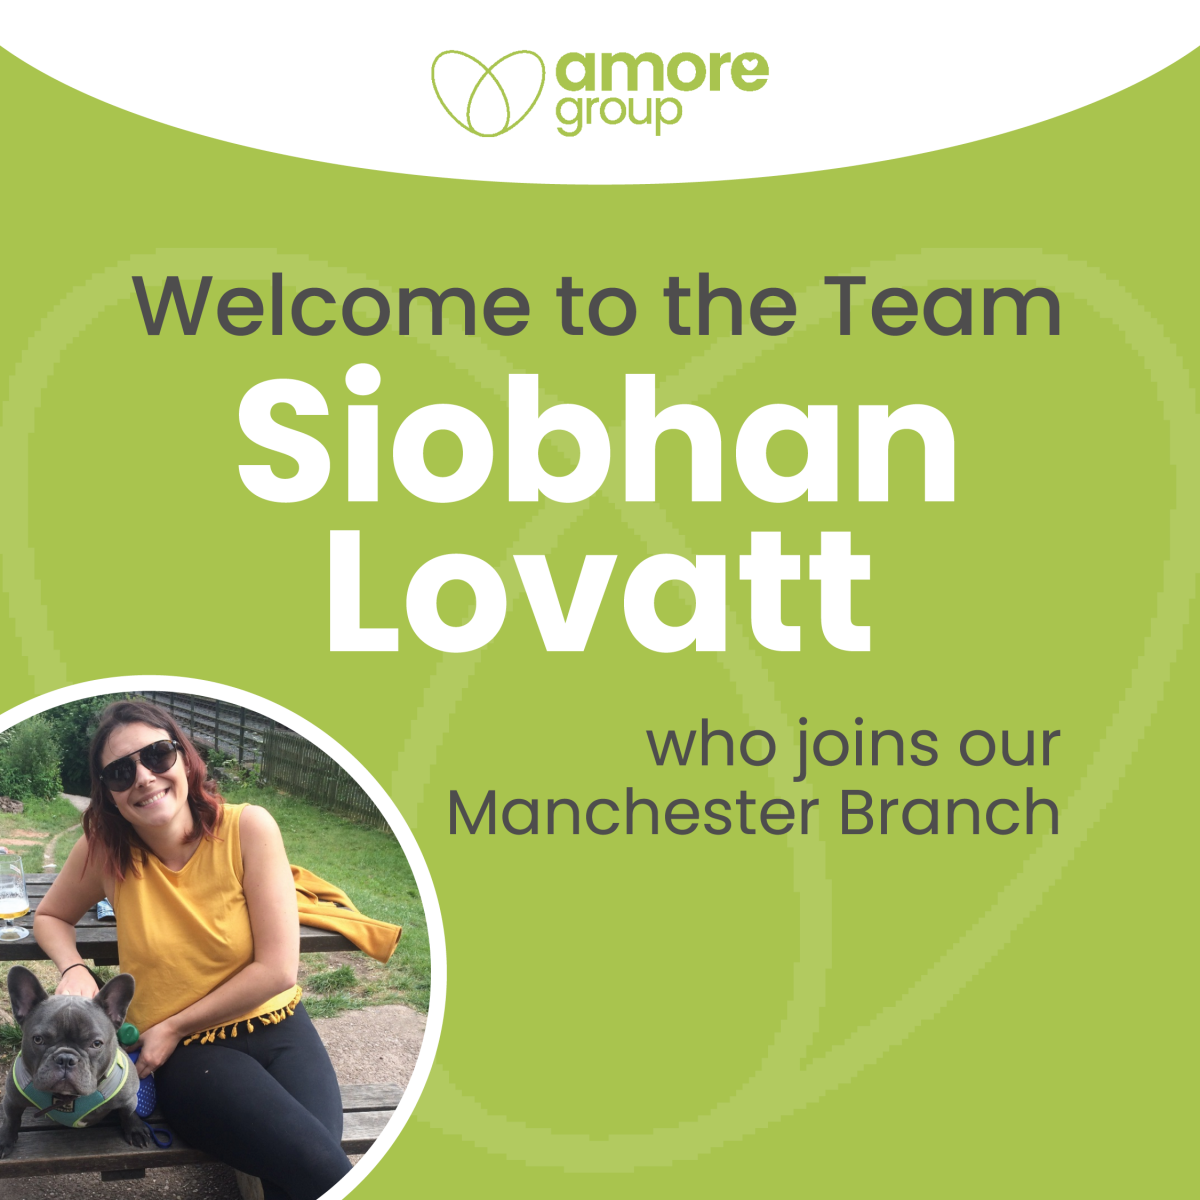 Welcome to the team Siobhan Lovatt!